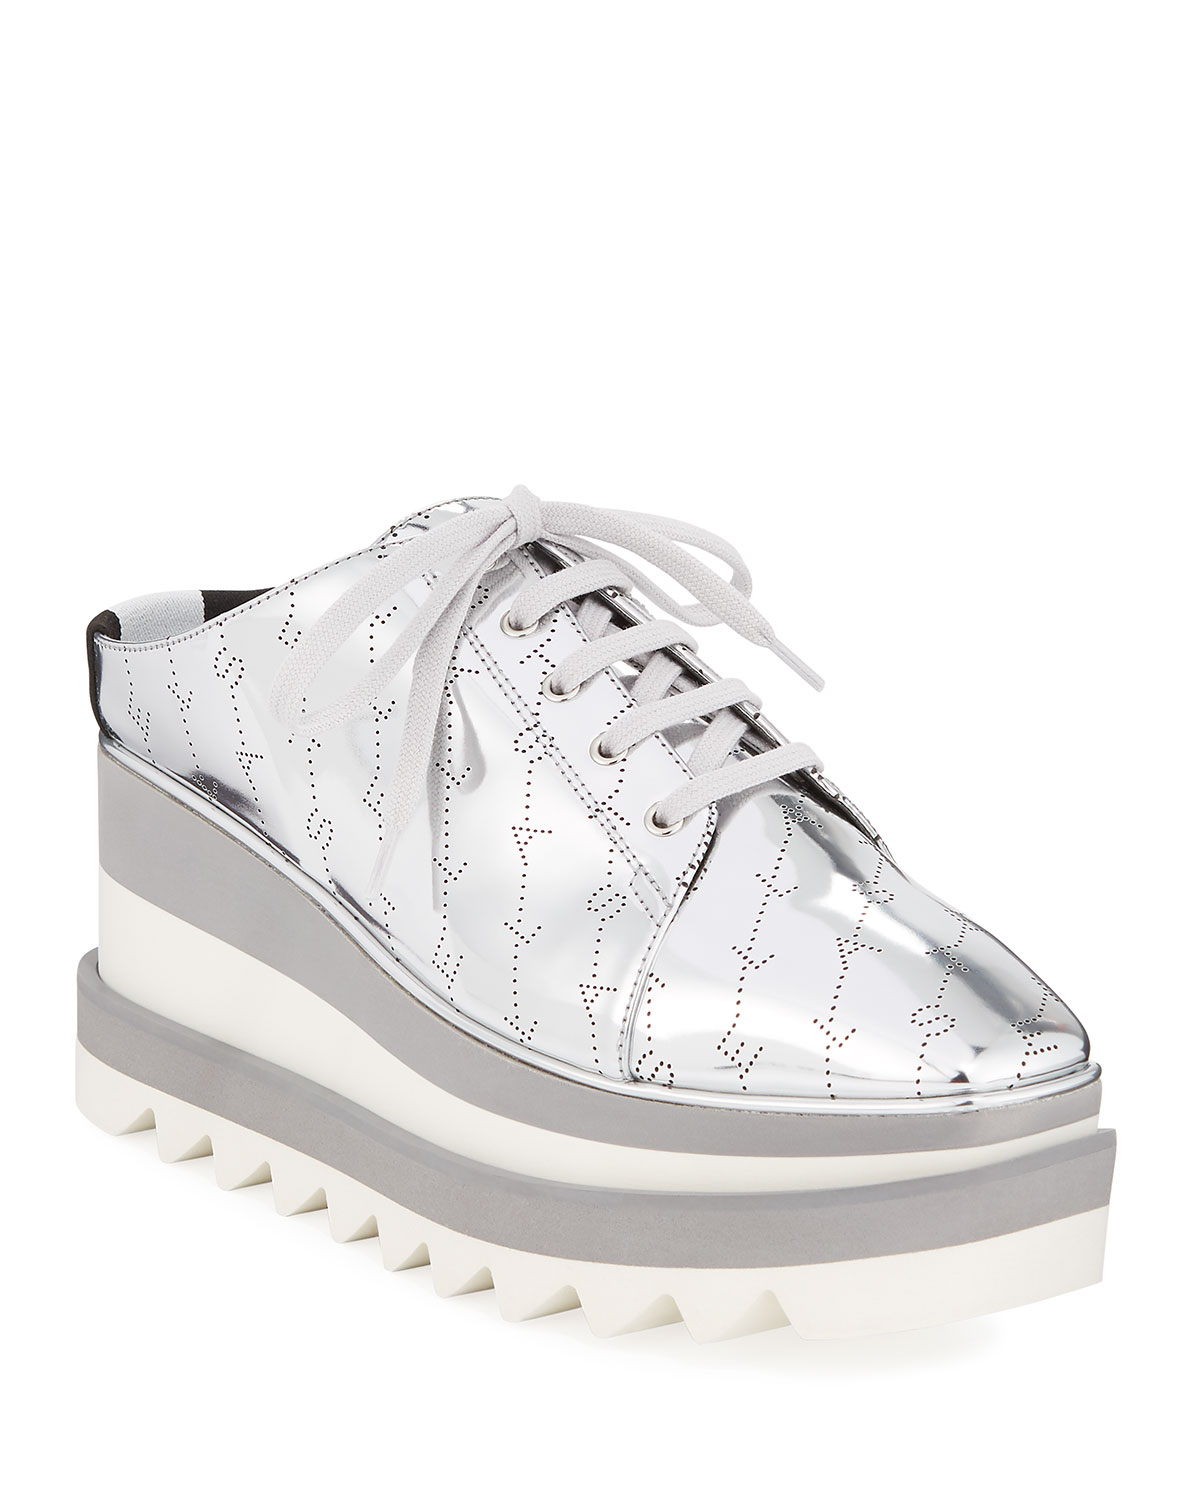 1a8f1eaea29 Stella McCartney Sneak-Elyse Metallic Platform Mule Sneakers ...